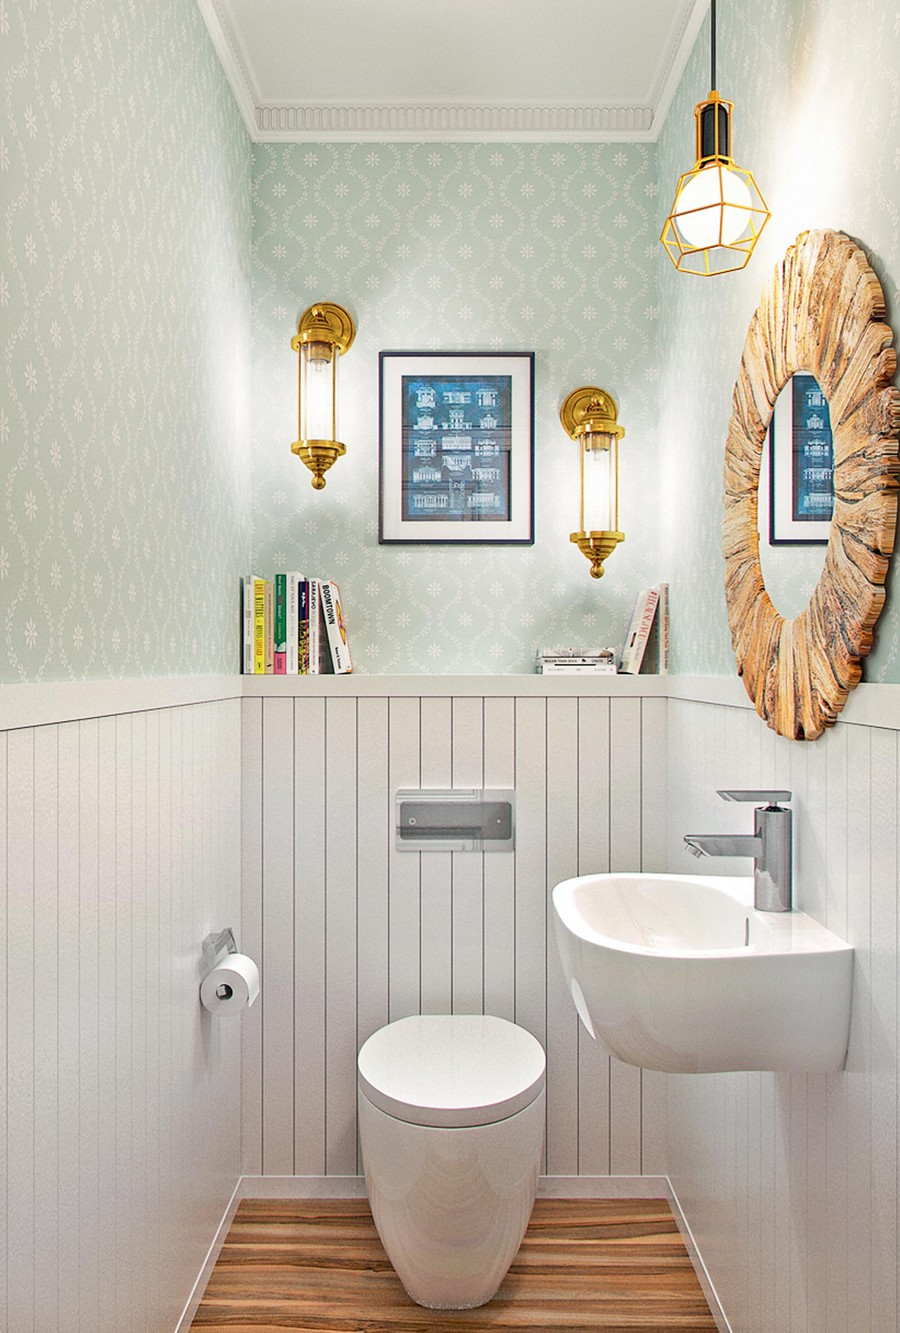 7-WC-bathroom-interior-light-gray-cellulose-based-paper-wallpaper-wall-covering-oval-toilet-wall-mounted-sink-round-mirror-wooden-frame-wall-panelling-white-shelves-lamps-pendant